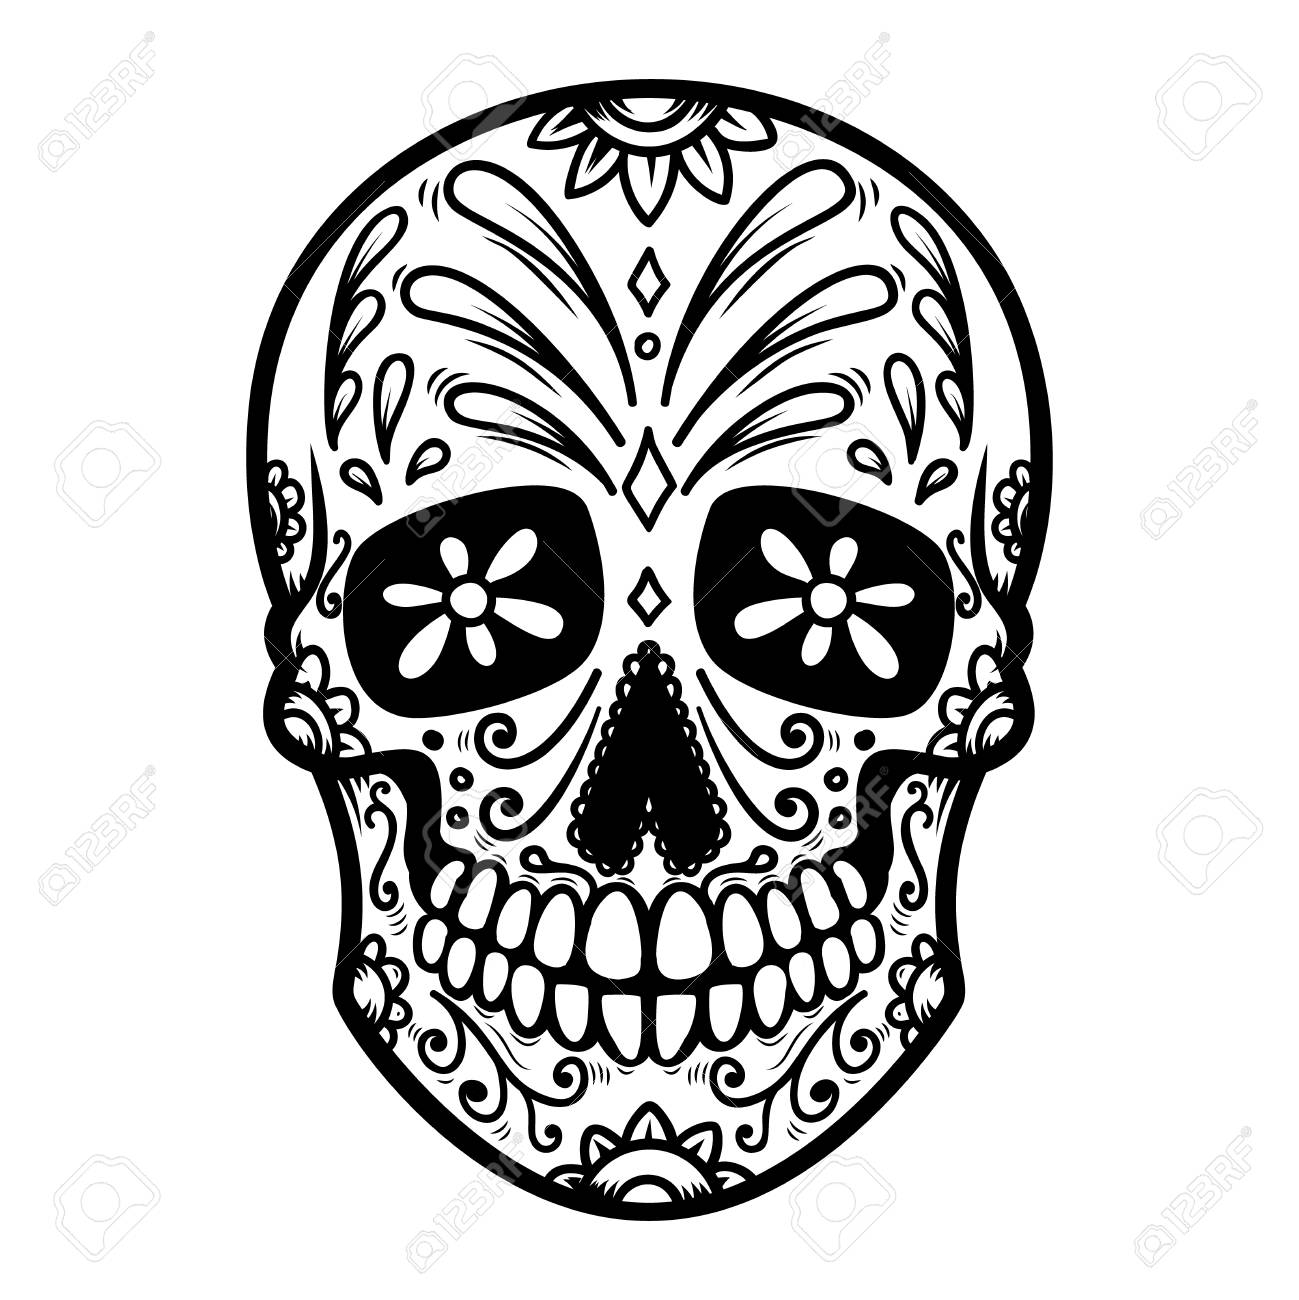 Illustration Of Mexican Sugar Skull Day Of The Dead Dia De Royalty Free Cliparts Vectors And Stock Illustration Image 108852594